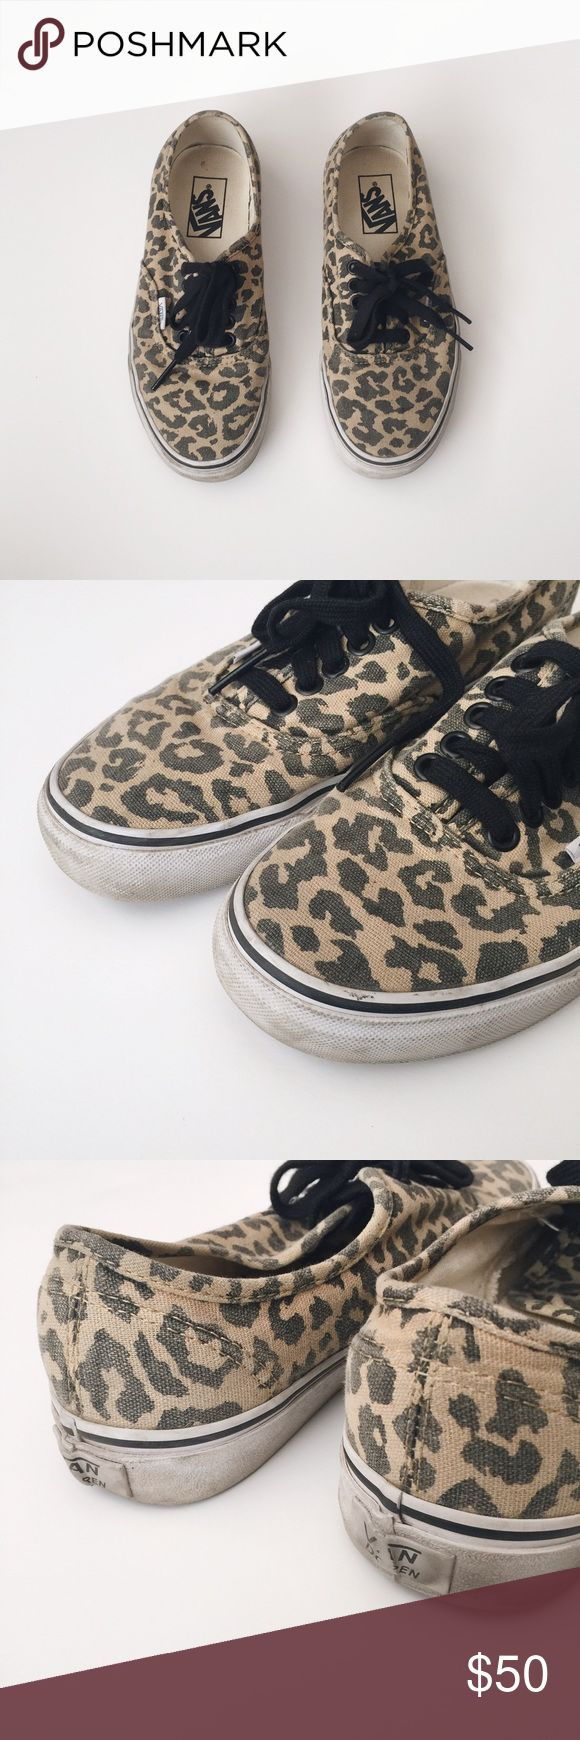 Vans Animal Print Authentics Pre-owned Vans Animal Print Authentics. Animal print has original faded look. Soles are dirty from wear, but good condition! Vans Shoes Sneakers